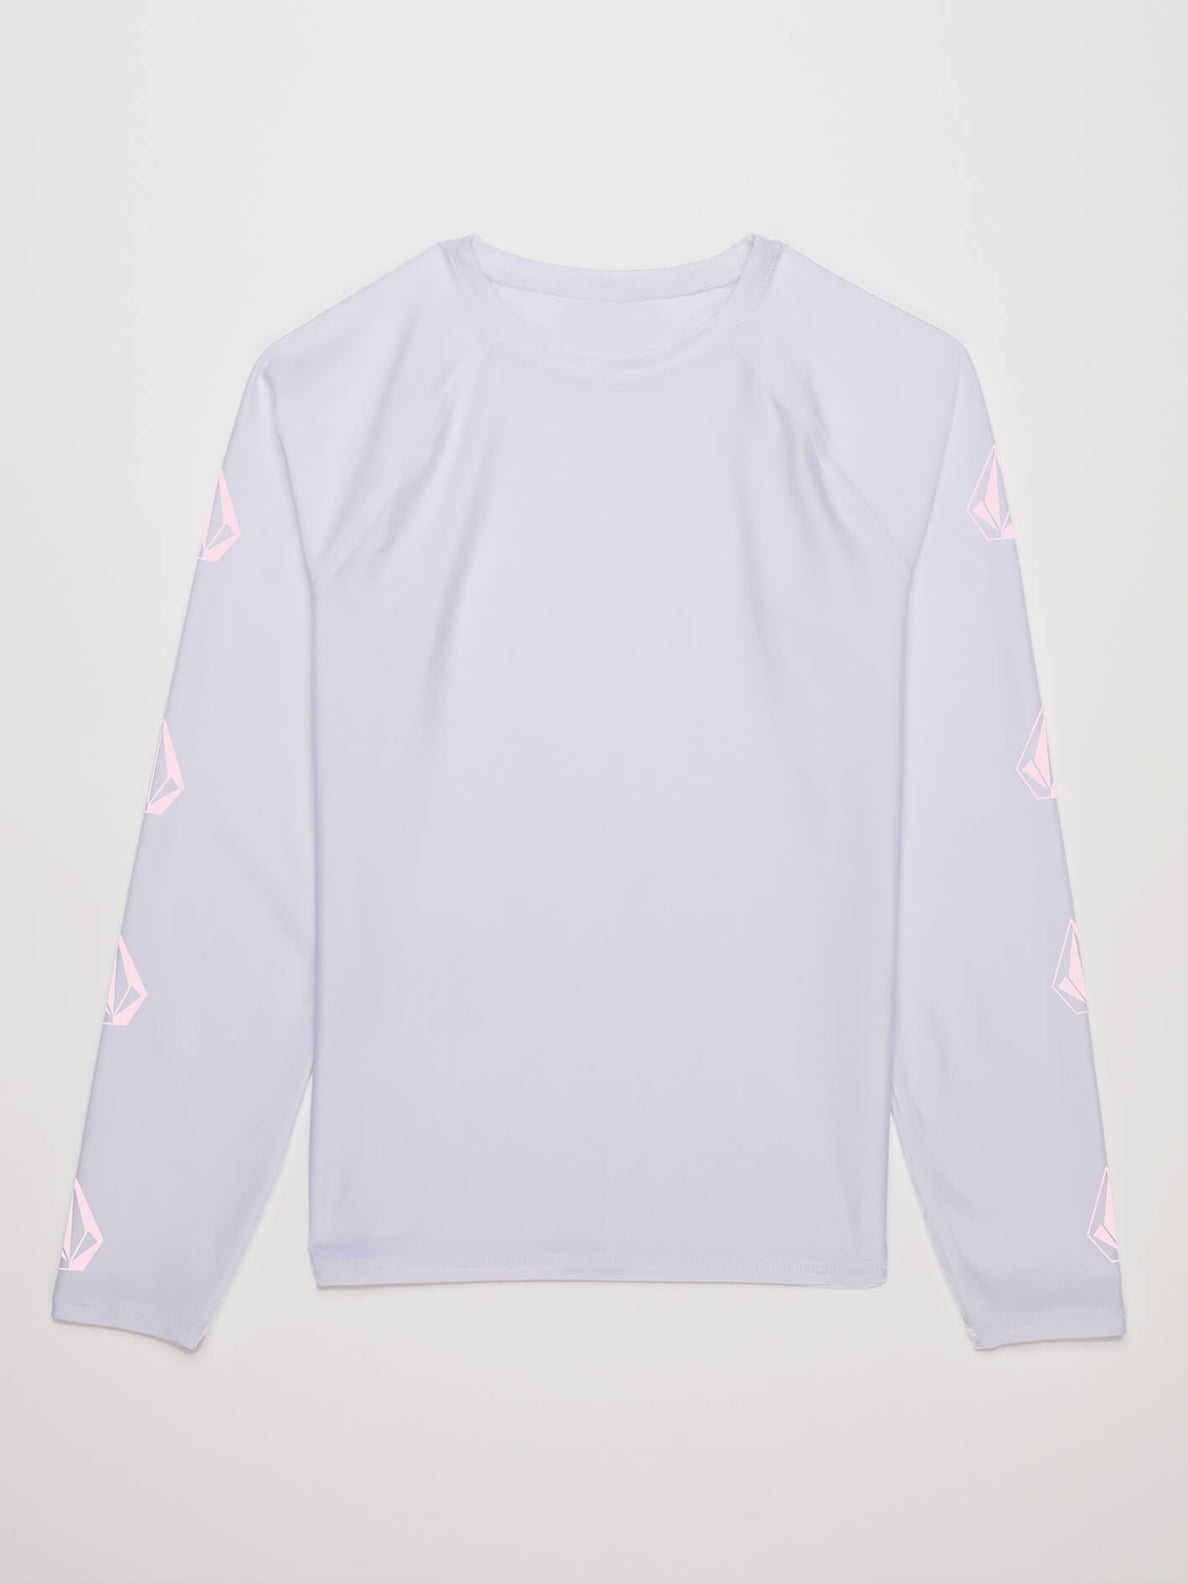 Little Girls Stone Plate Long Sleeve Rashguard In White, Alternate View